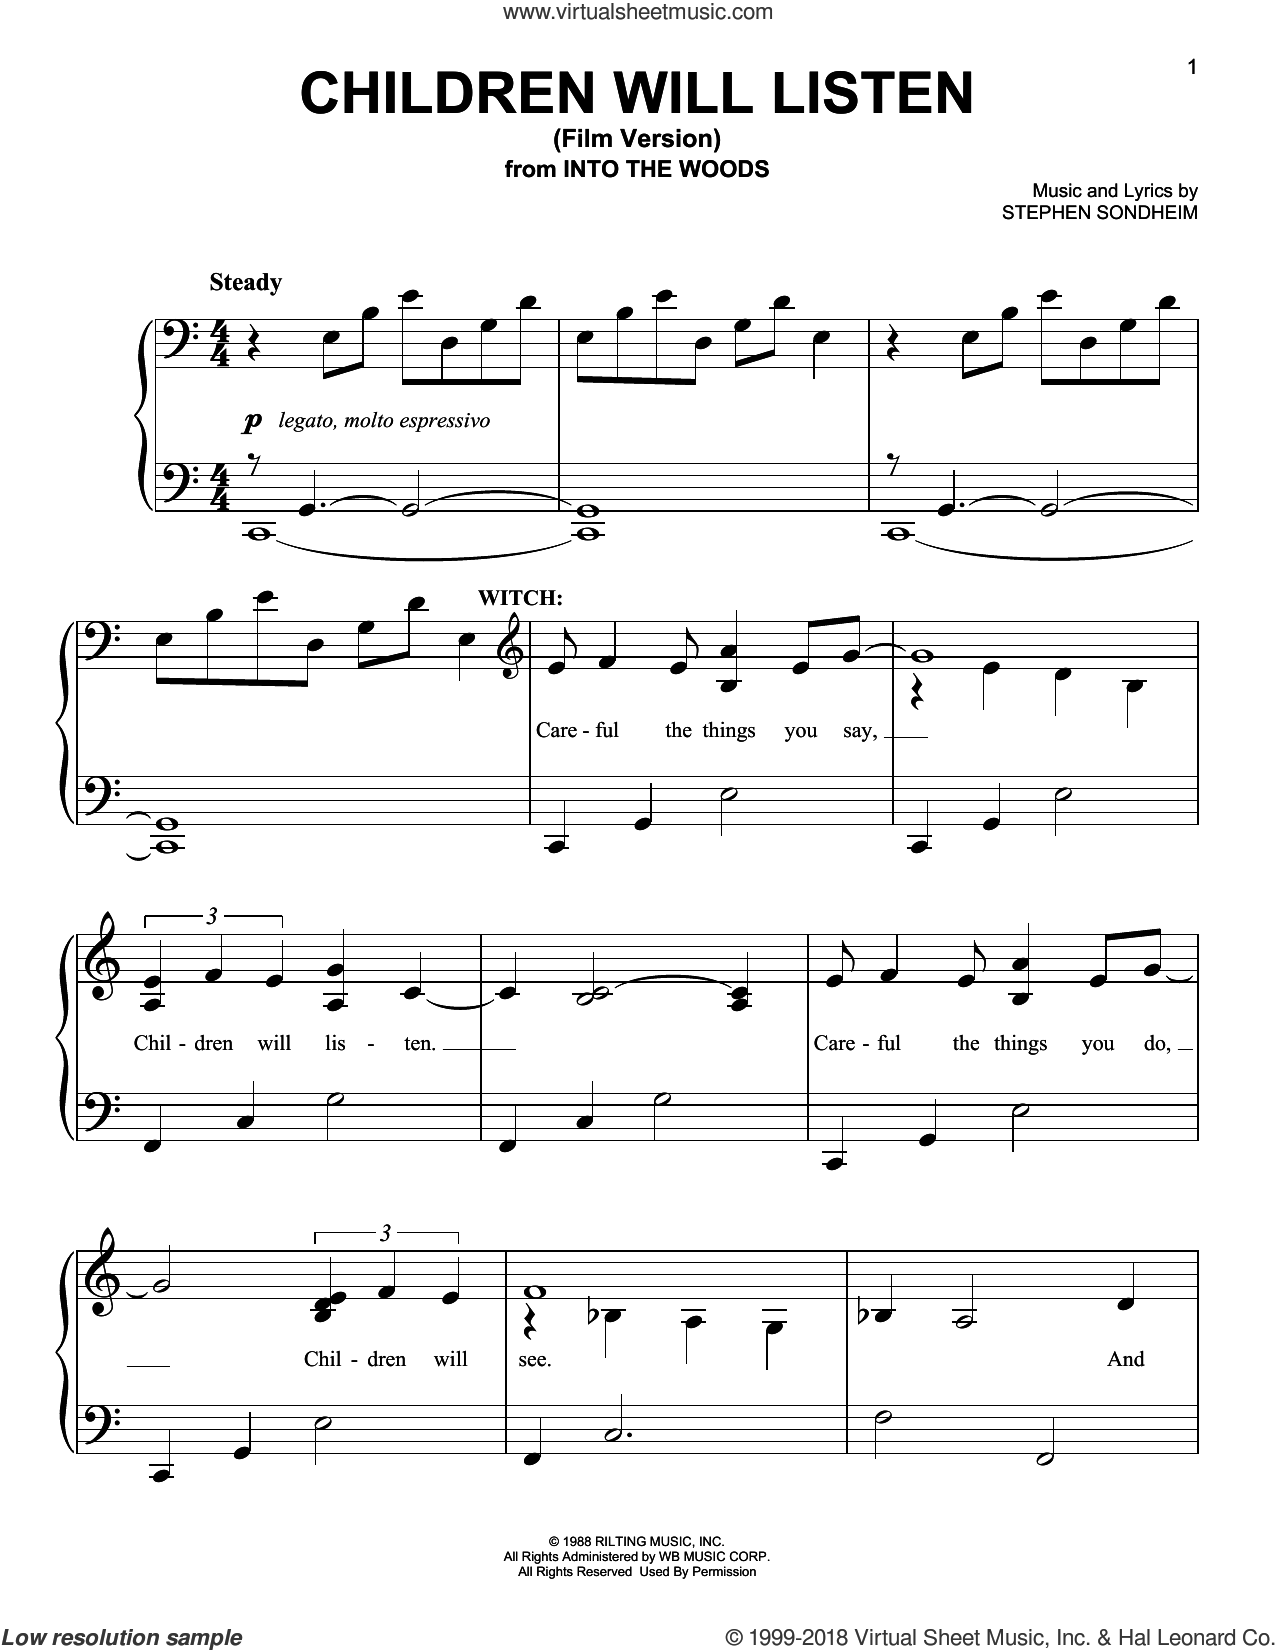 Children Will Listen (Film Version) (from Into The Woods) sheet music for piano solo by Stephen Sondheim, easy skill level